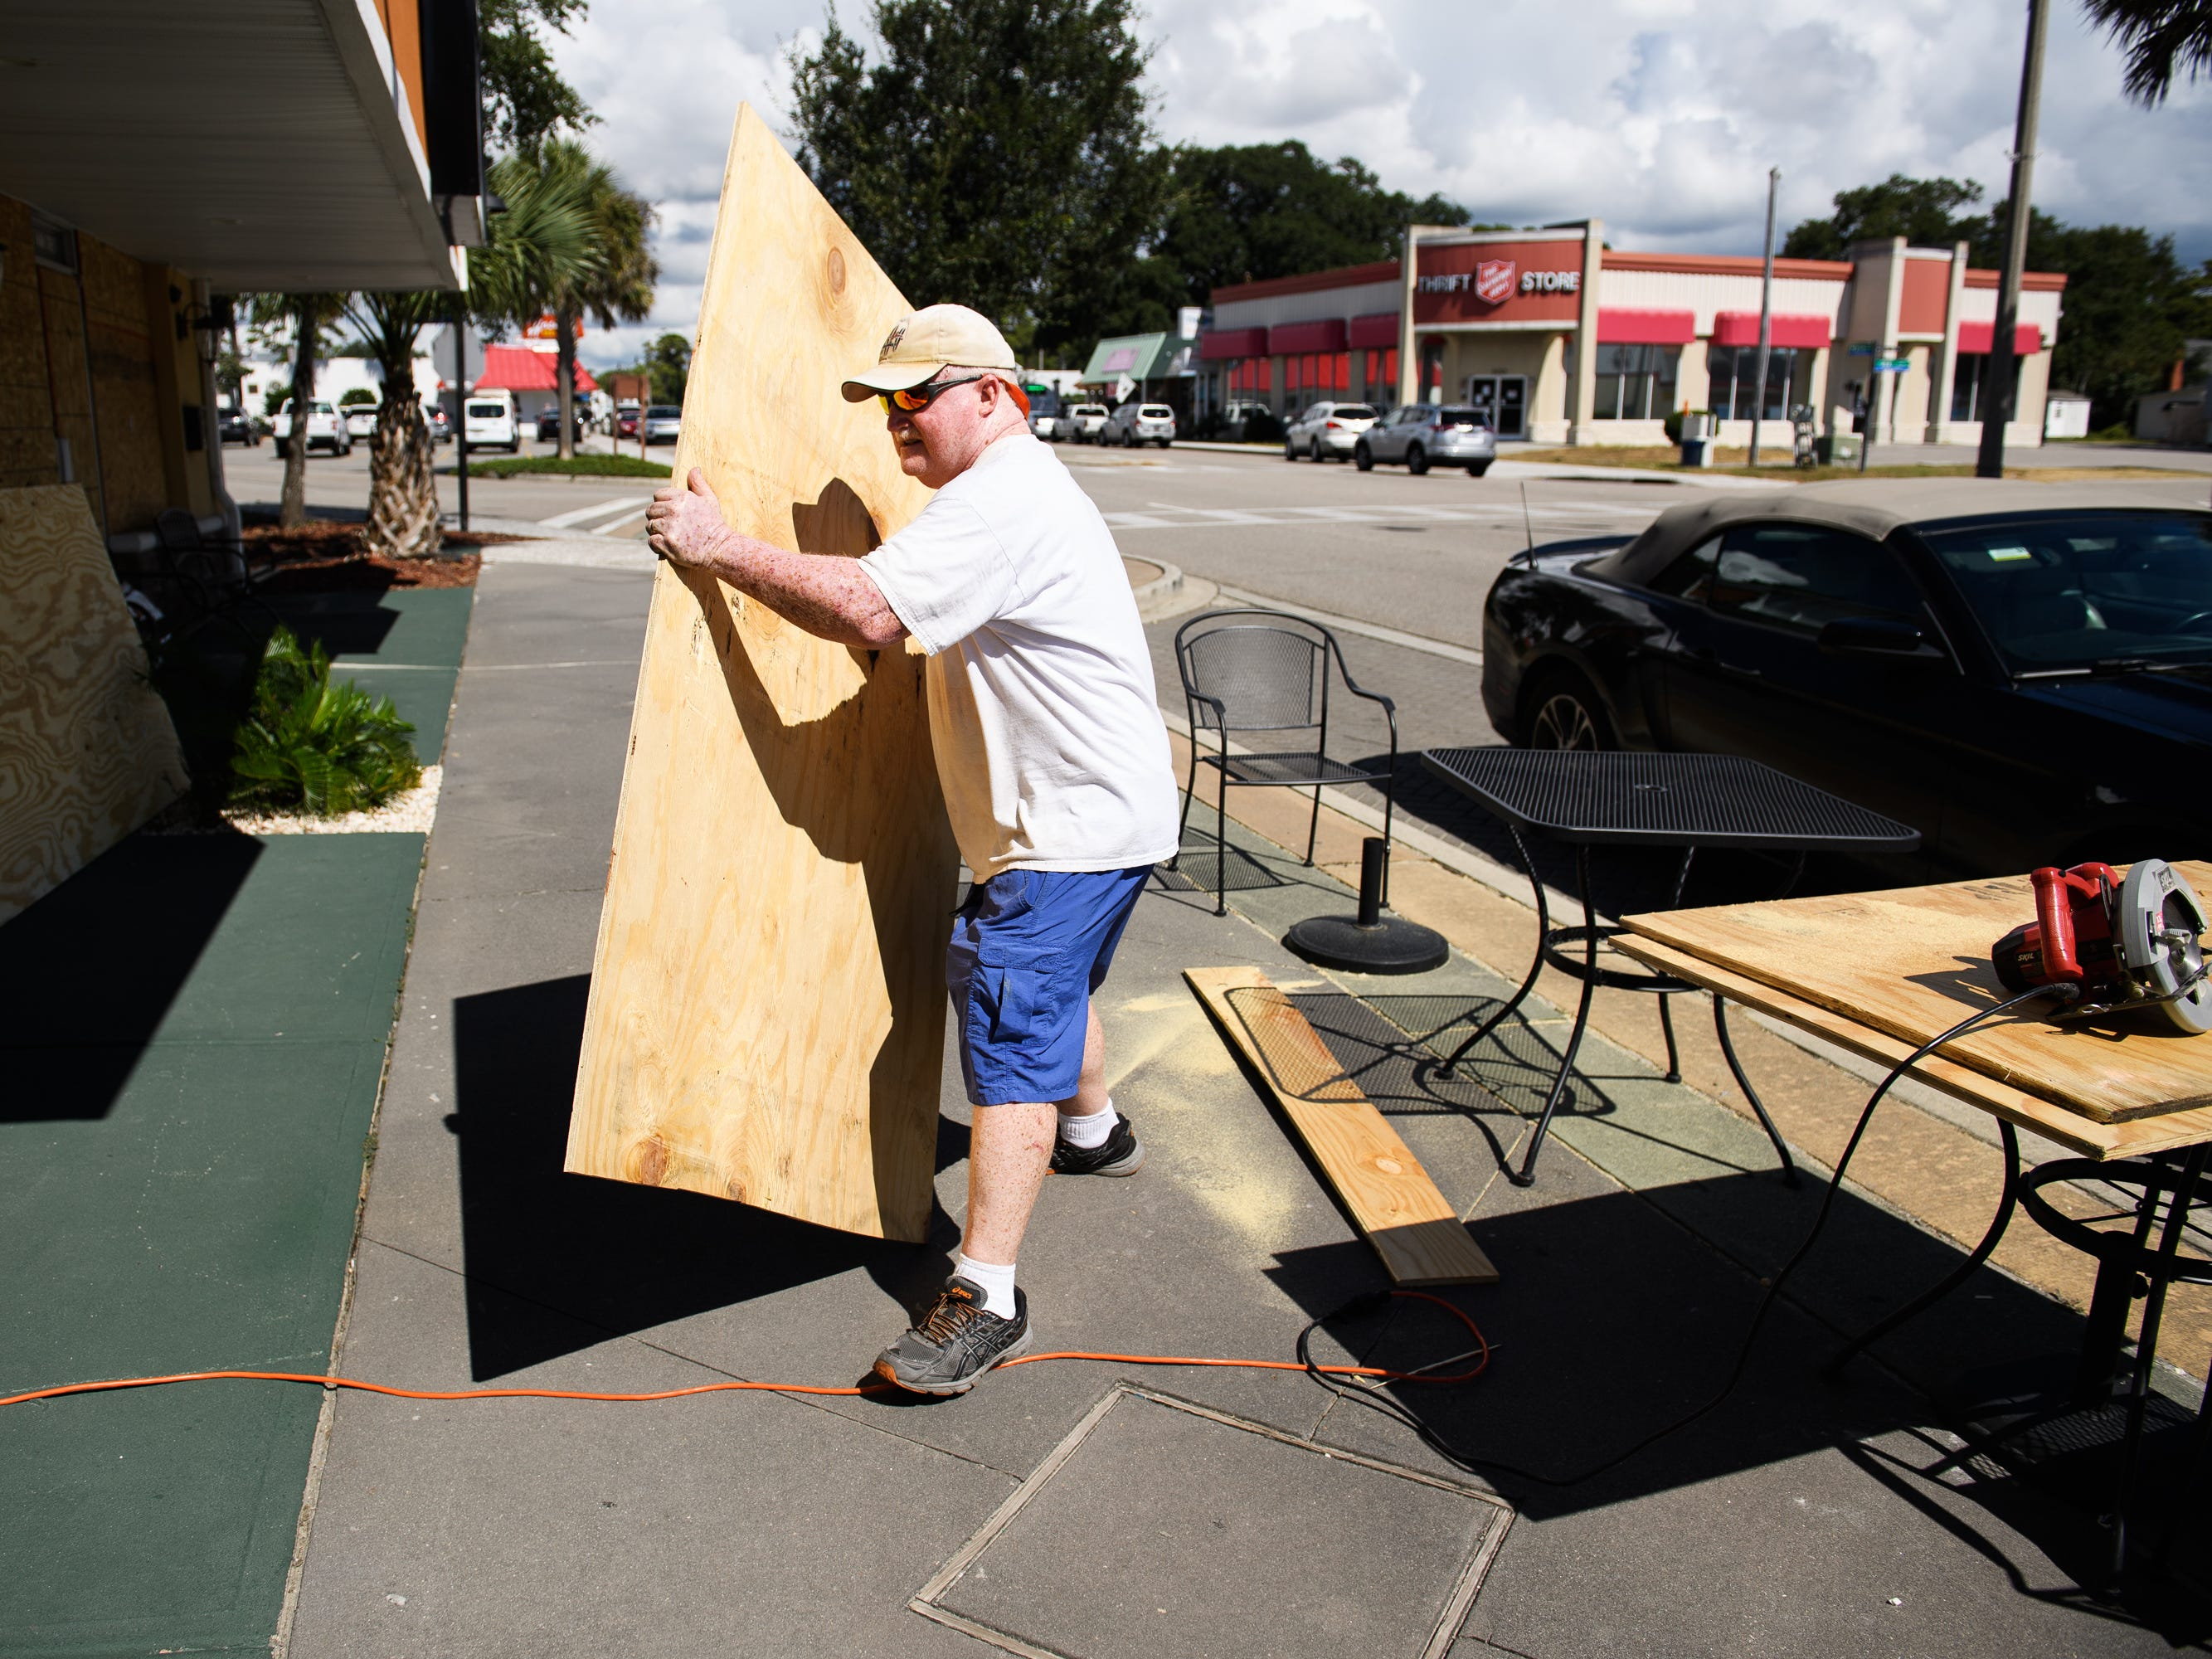 Lee Dorton, owner of Infused Olive in North Myrtle Beach, carries a large piece of plywood over to his business on Tuesday, Sept. 11, 2018.